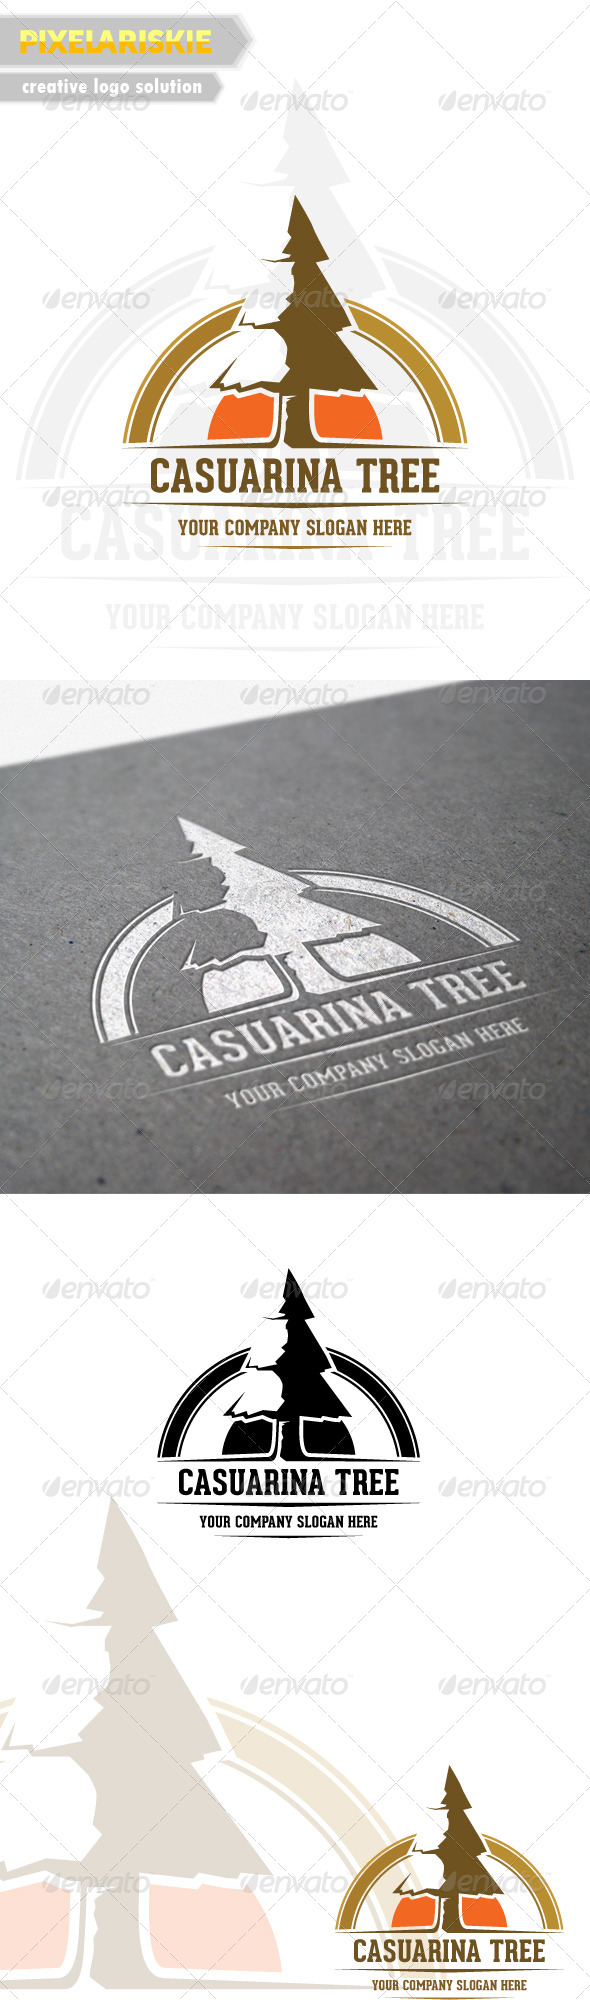 Casuarina Tree Logo - Nature Logo Templates